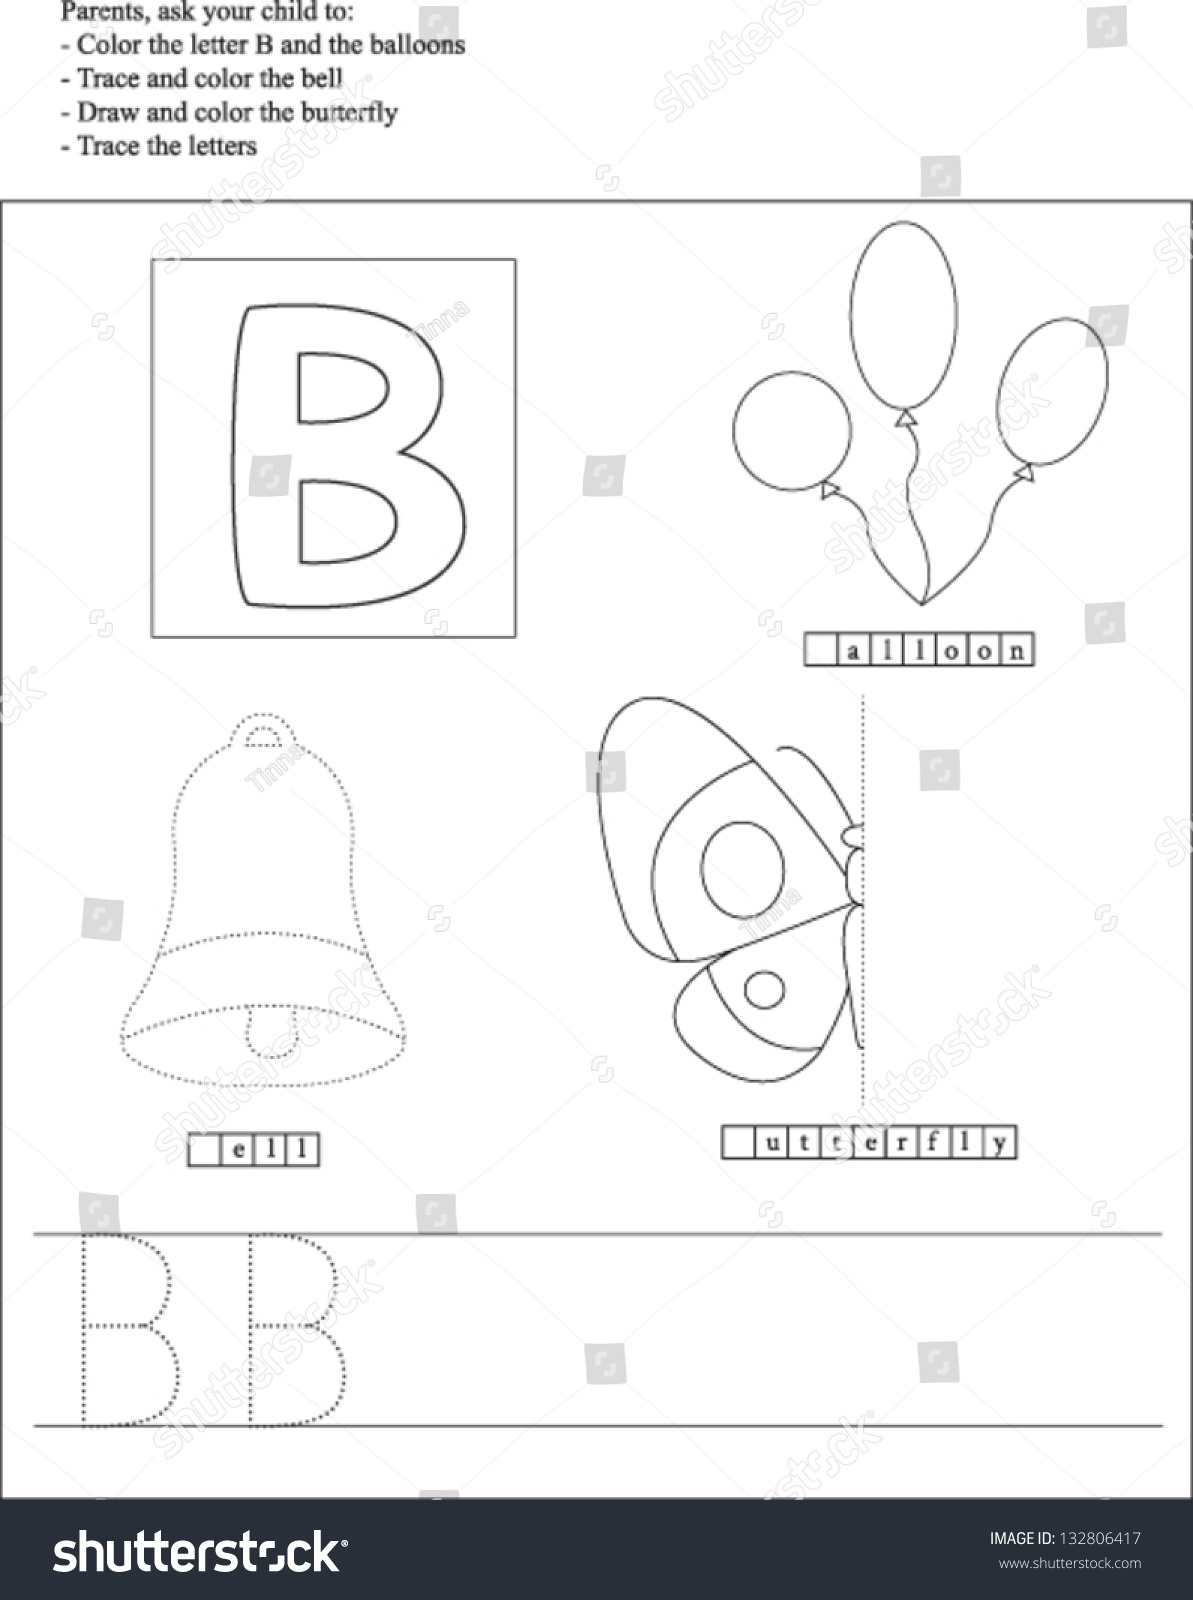 Trace And Color Letter B Worksheet For Preschoolers Stock Vector Illustration